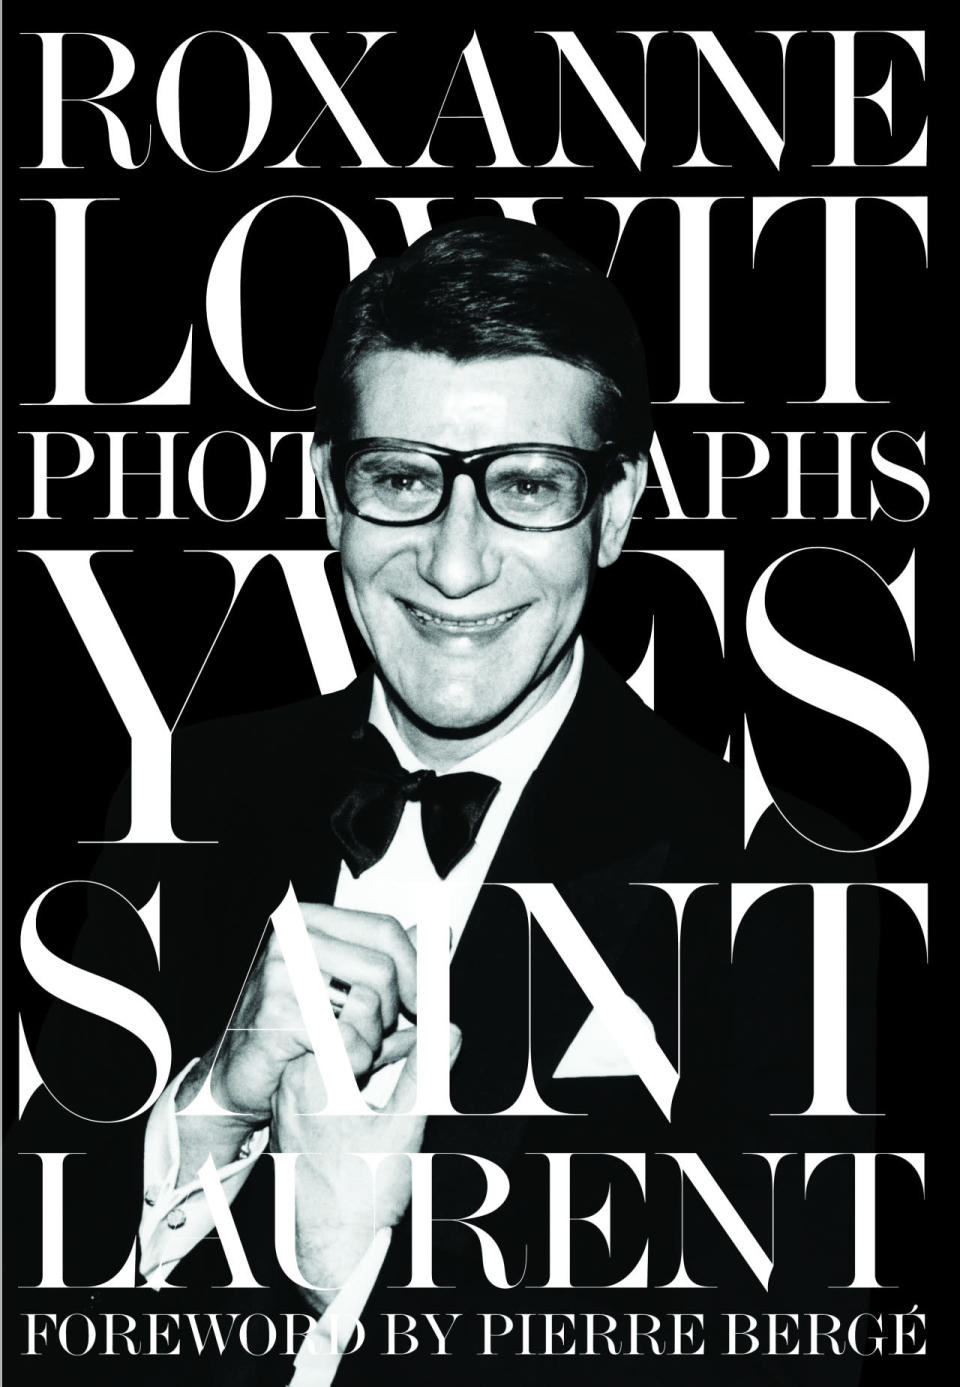 The cover of Yves Saint Laurent, available November 18th